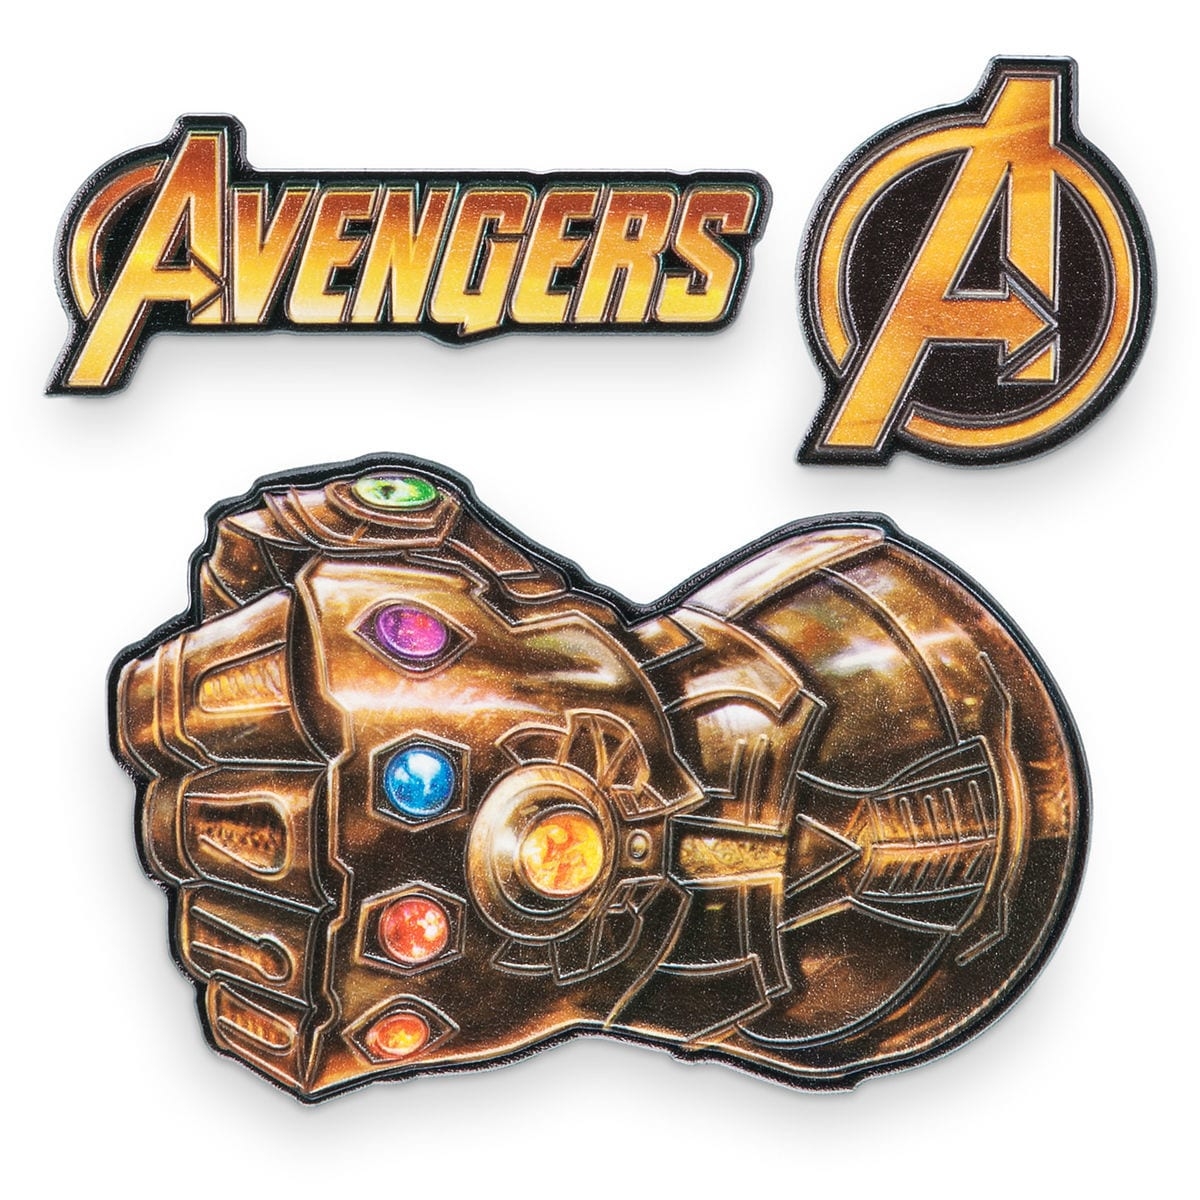 Marvels Avengers Infinity War Adhesive Patches Shopdisney